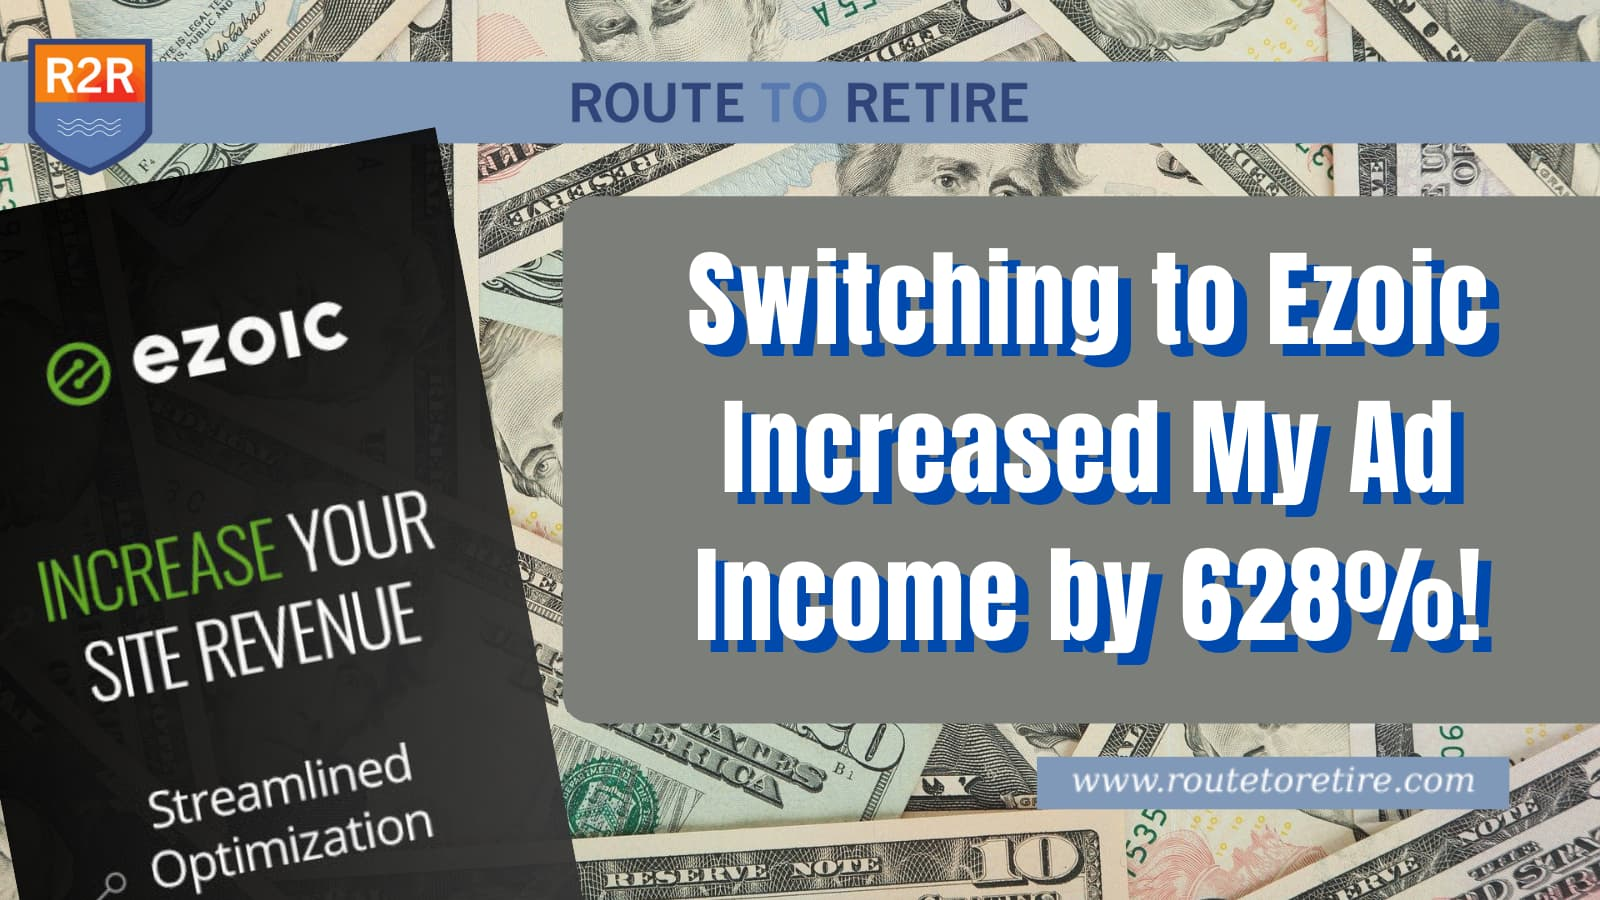 Switching to Ezoic Increased My Ad Income by 628%!